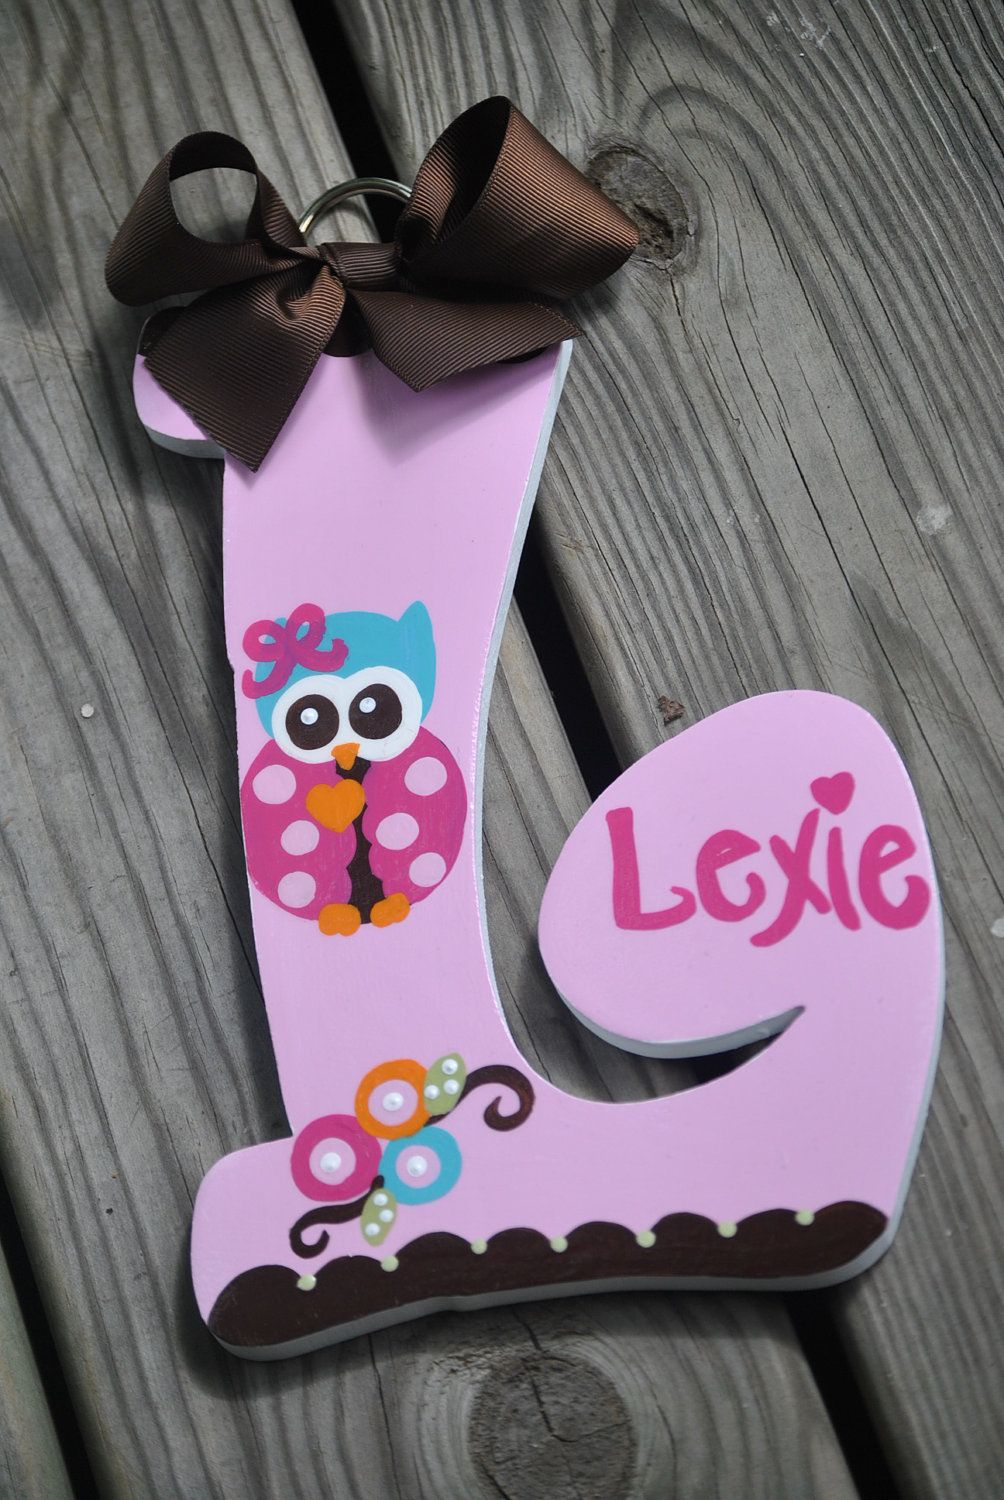 LEYAH OWL Handpainted Letter set by TheJellyBeanJunction on Etsy, $11.99